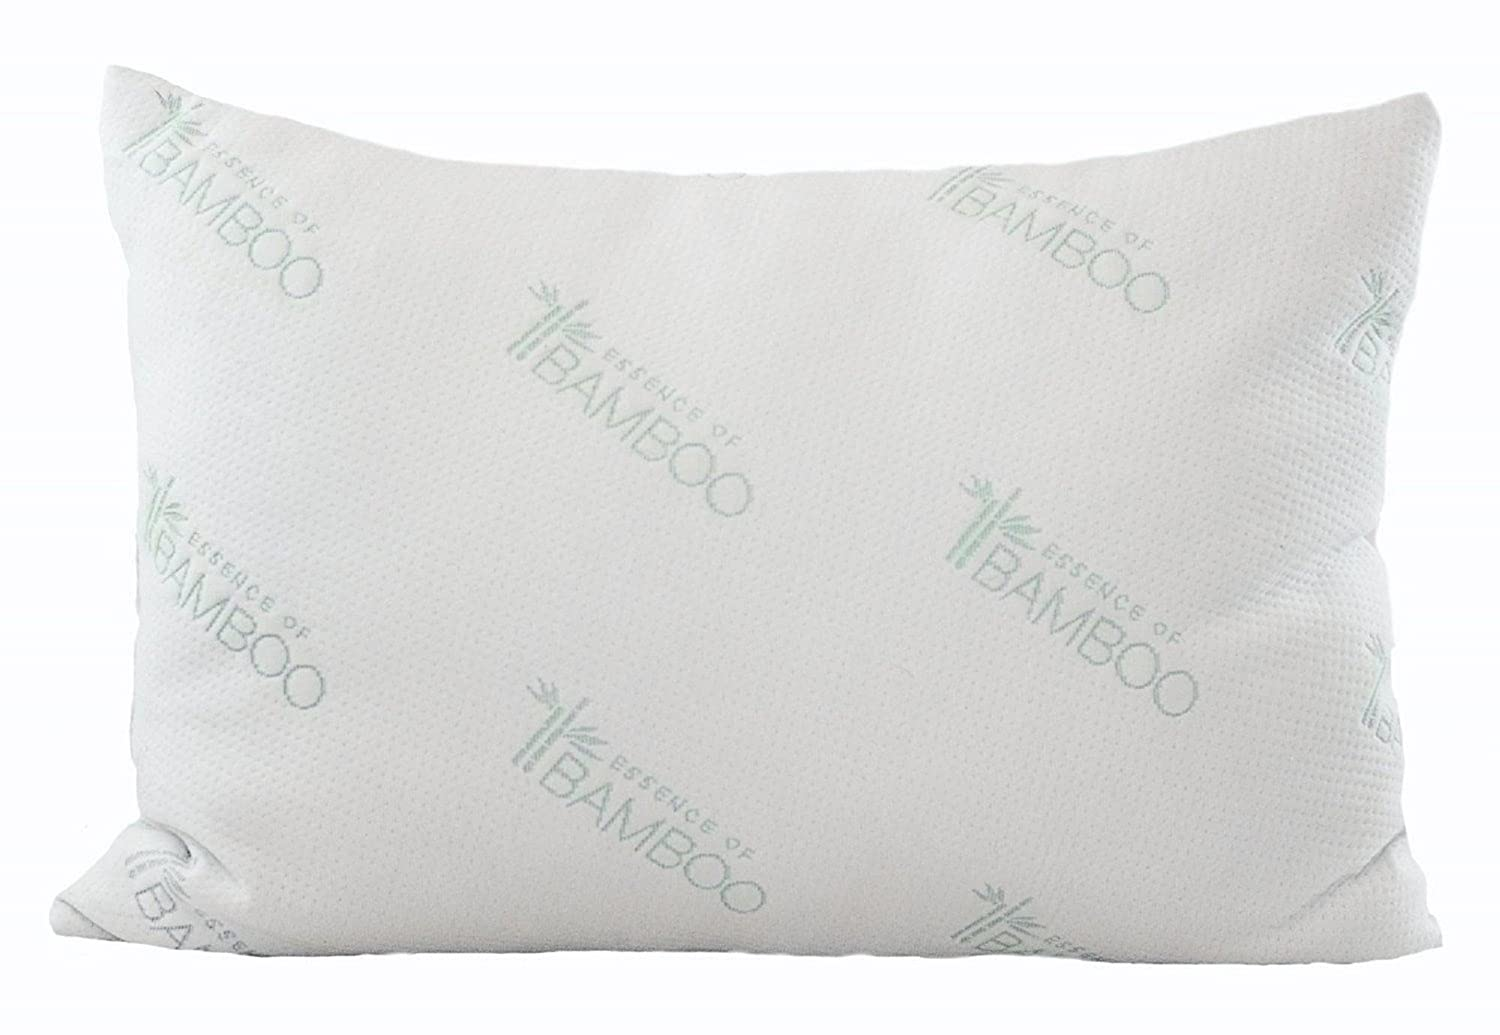 sleep foam stay cool reviews ventilated jan classic memory pillow brands best ratings pillows